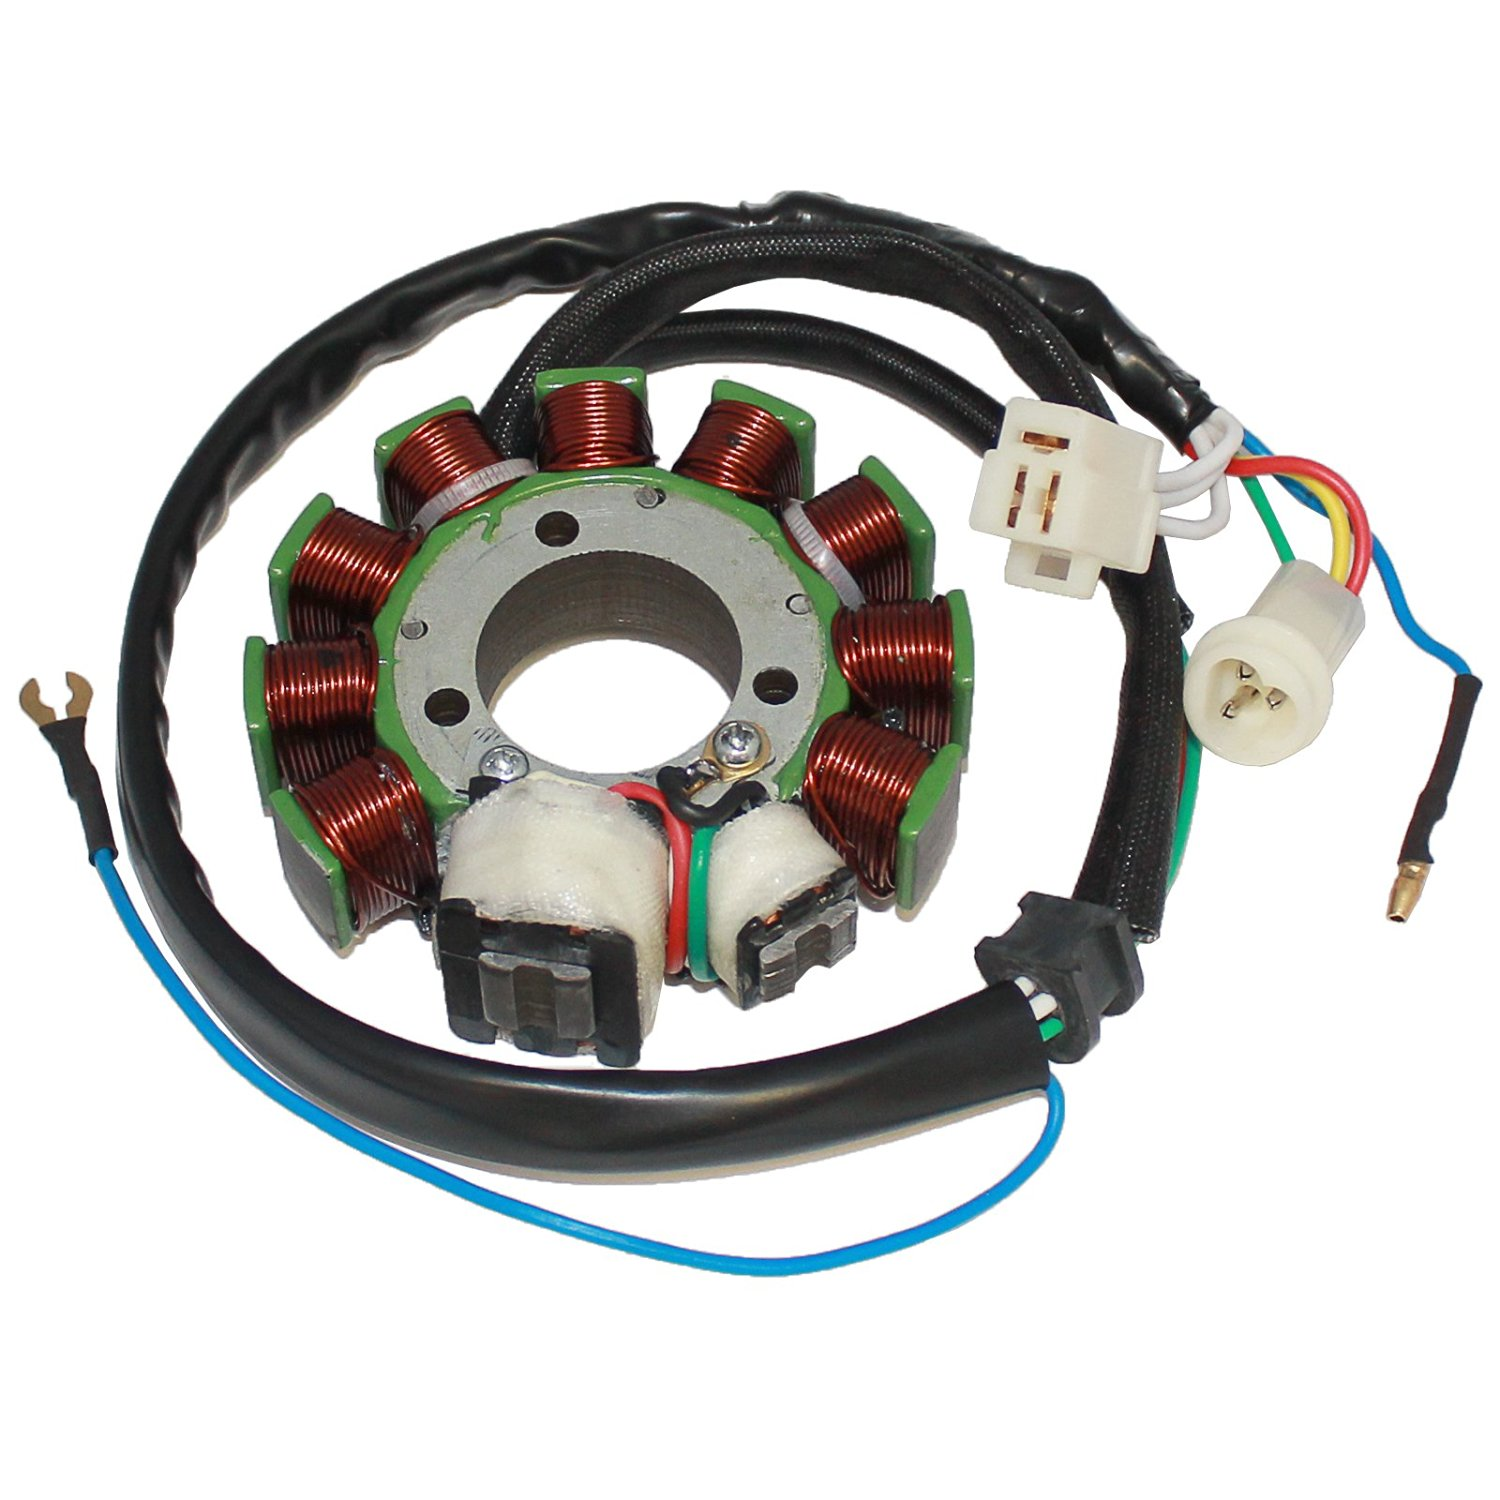 Cheap Xt225 Parts Find Deals On Line At Alibabacom Caltric Wiring Diagram Get Quotations Stator Fits Yamaha Serow 225 Xt 1992 2000